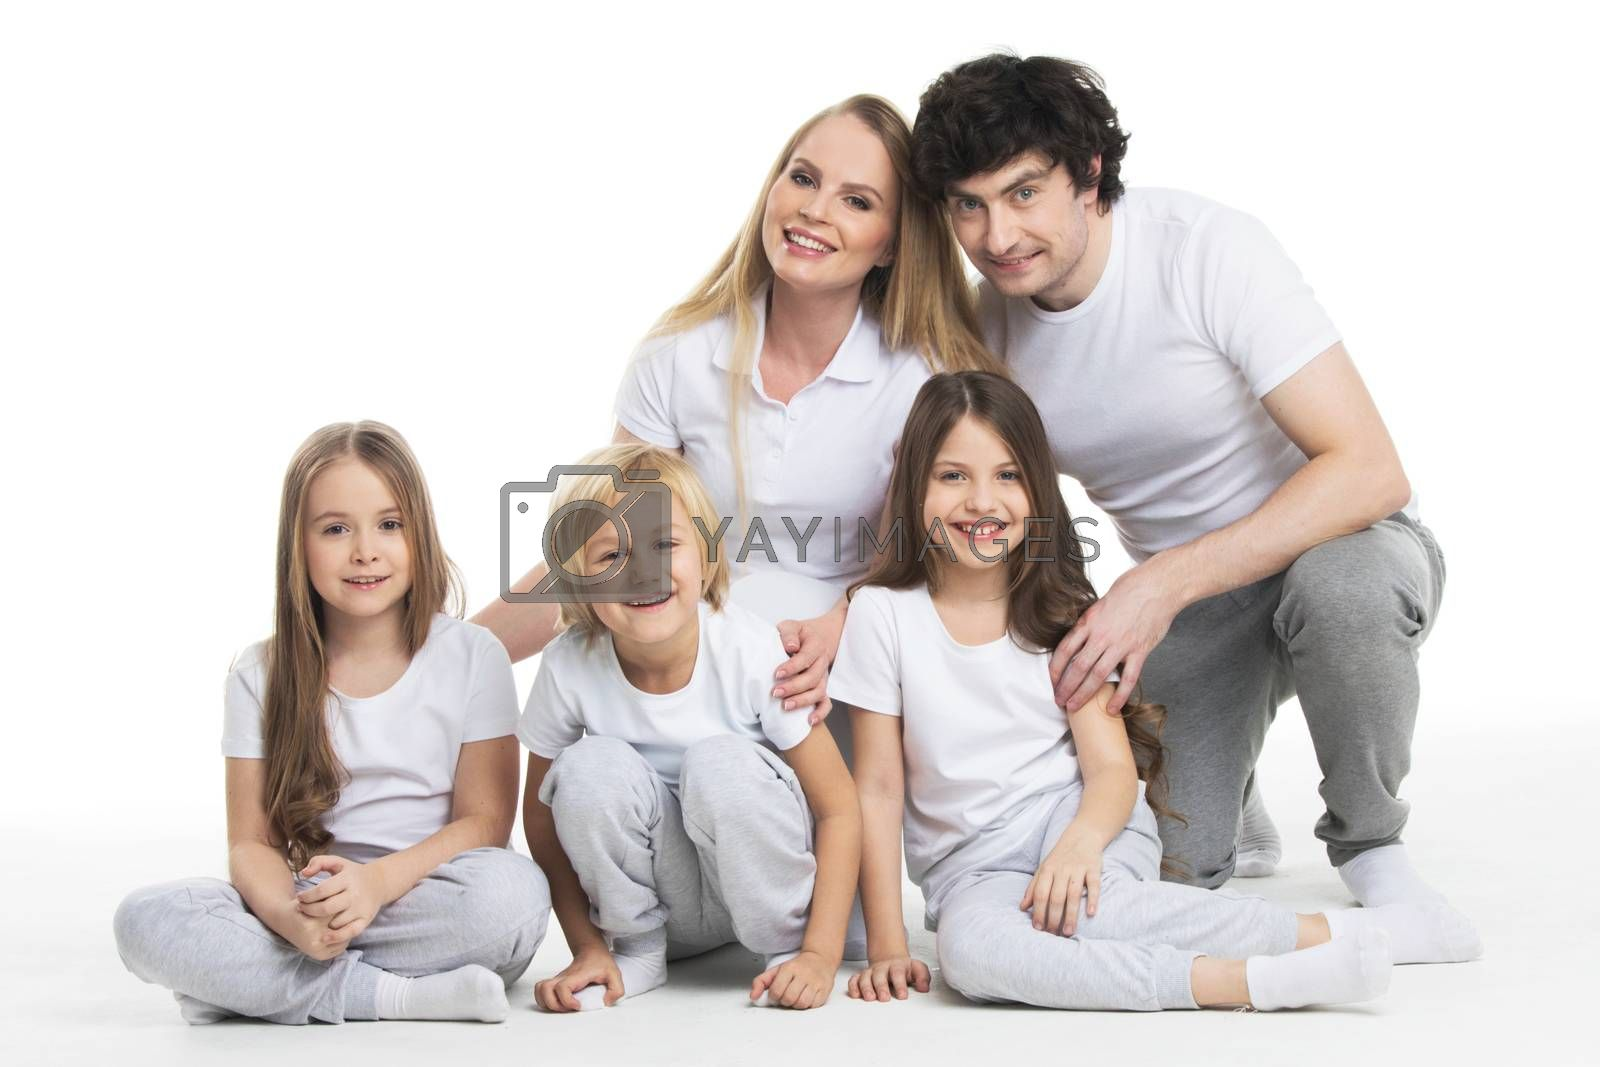 Happy smiling family of two parents and three children sitting on the floor studio isolated on white background